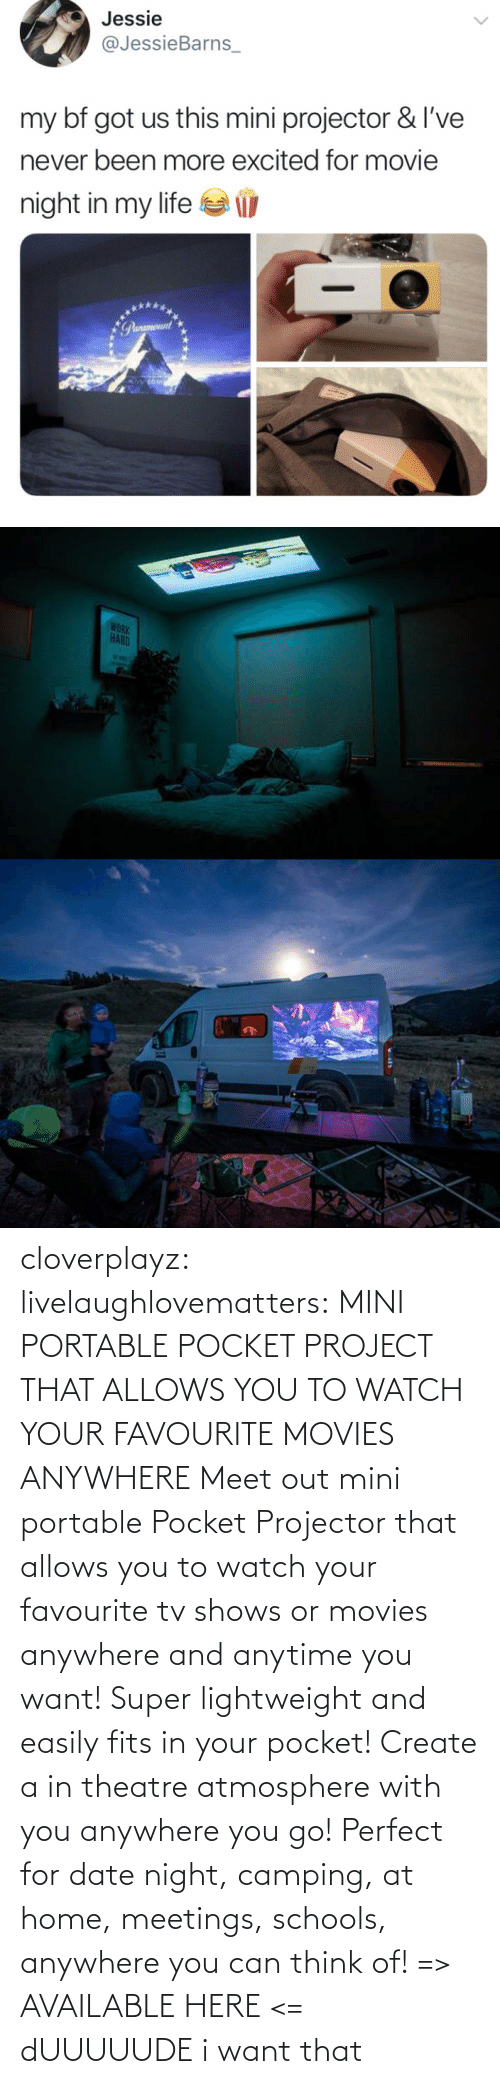 portable: cloverplayz: livelaughlovematters:  MINI PORTABLE POCKET PROJECT THAT ALLOWS YOU TO WATCH YOUR FAVOURITE MOVIES ANYWHERE Meet out mini portable Pocket Projector that allows you to watch your favourite tv shows or movies anywhere and anytime you want! Super lightweight and easily fits in your pocket! Create a in theatre atmosphere with you anywhere you go! Perfect for date night, camping, at home, meetings, schools, anywhere you can think of! => AVAILABLE HERE <=  dUUUUUDE i want that